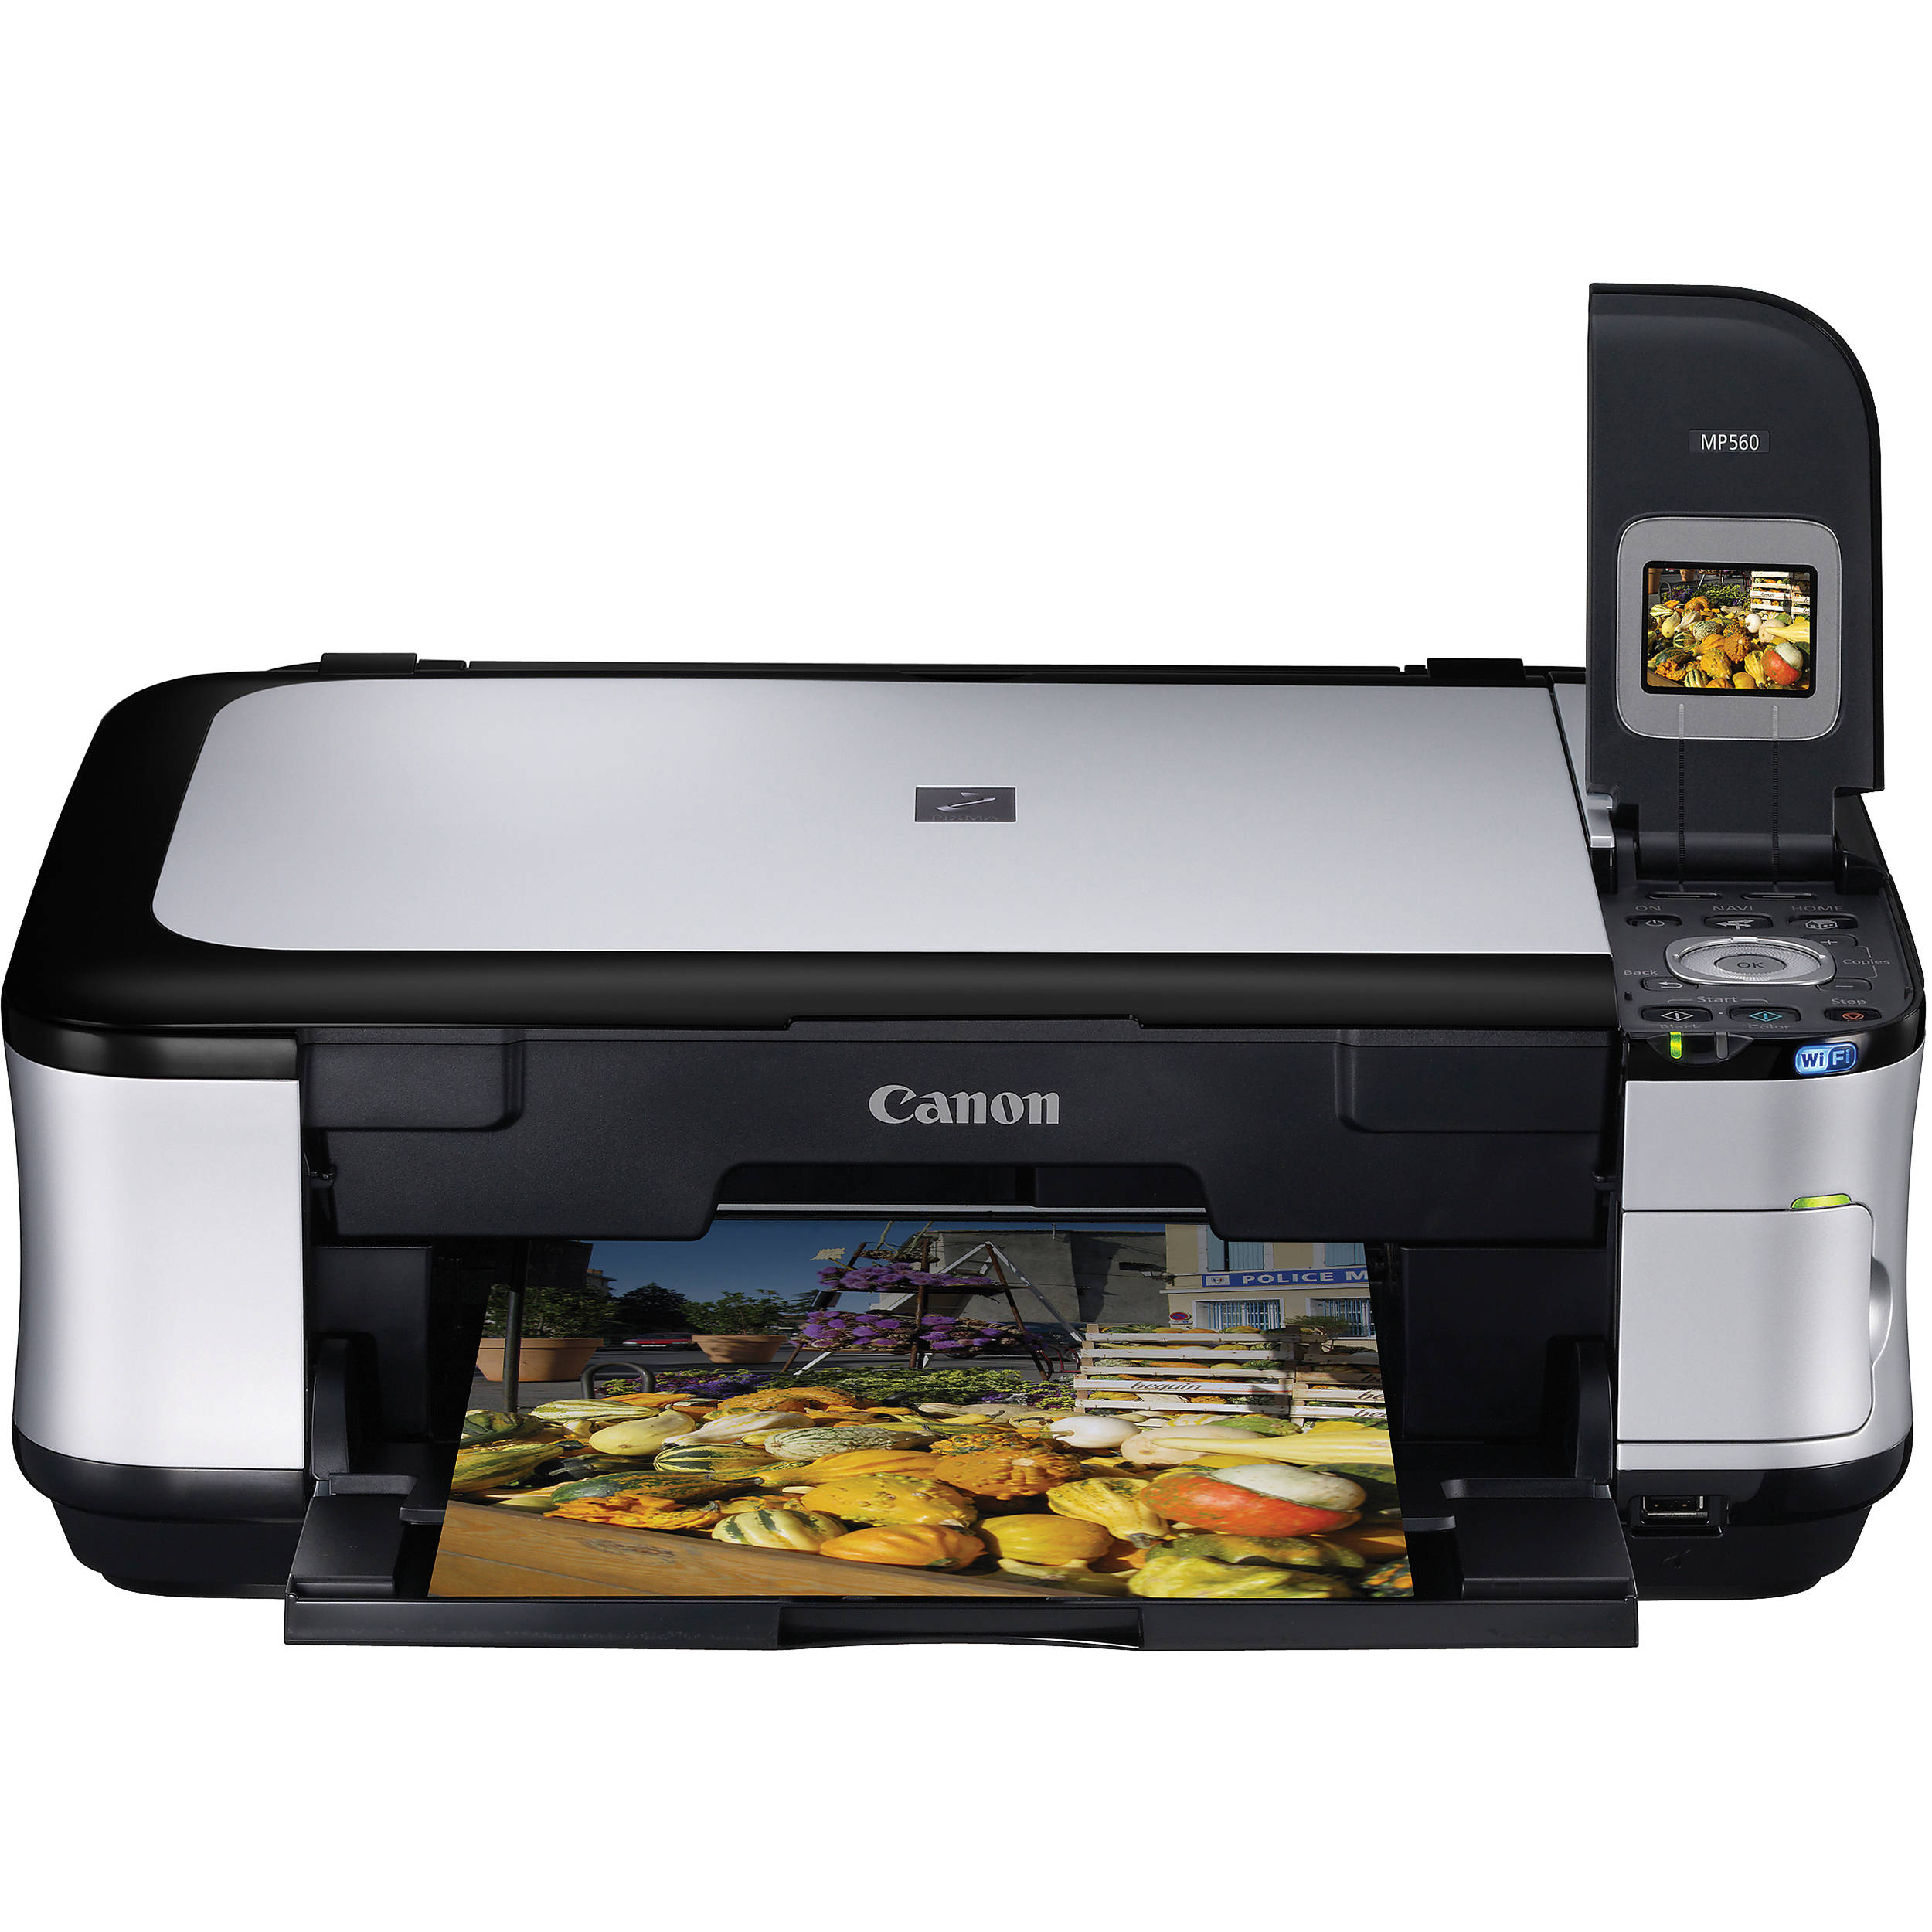 Canon pixma mp560 scanner driver (os x) canon printer drivers.